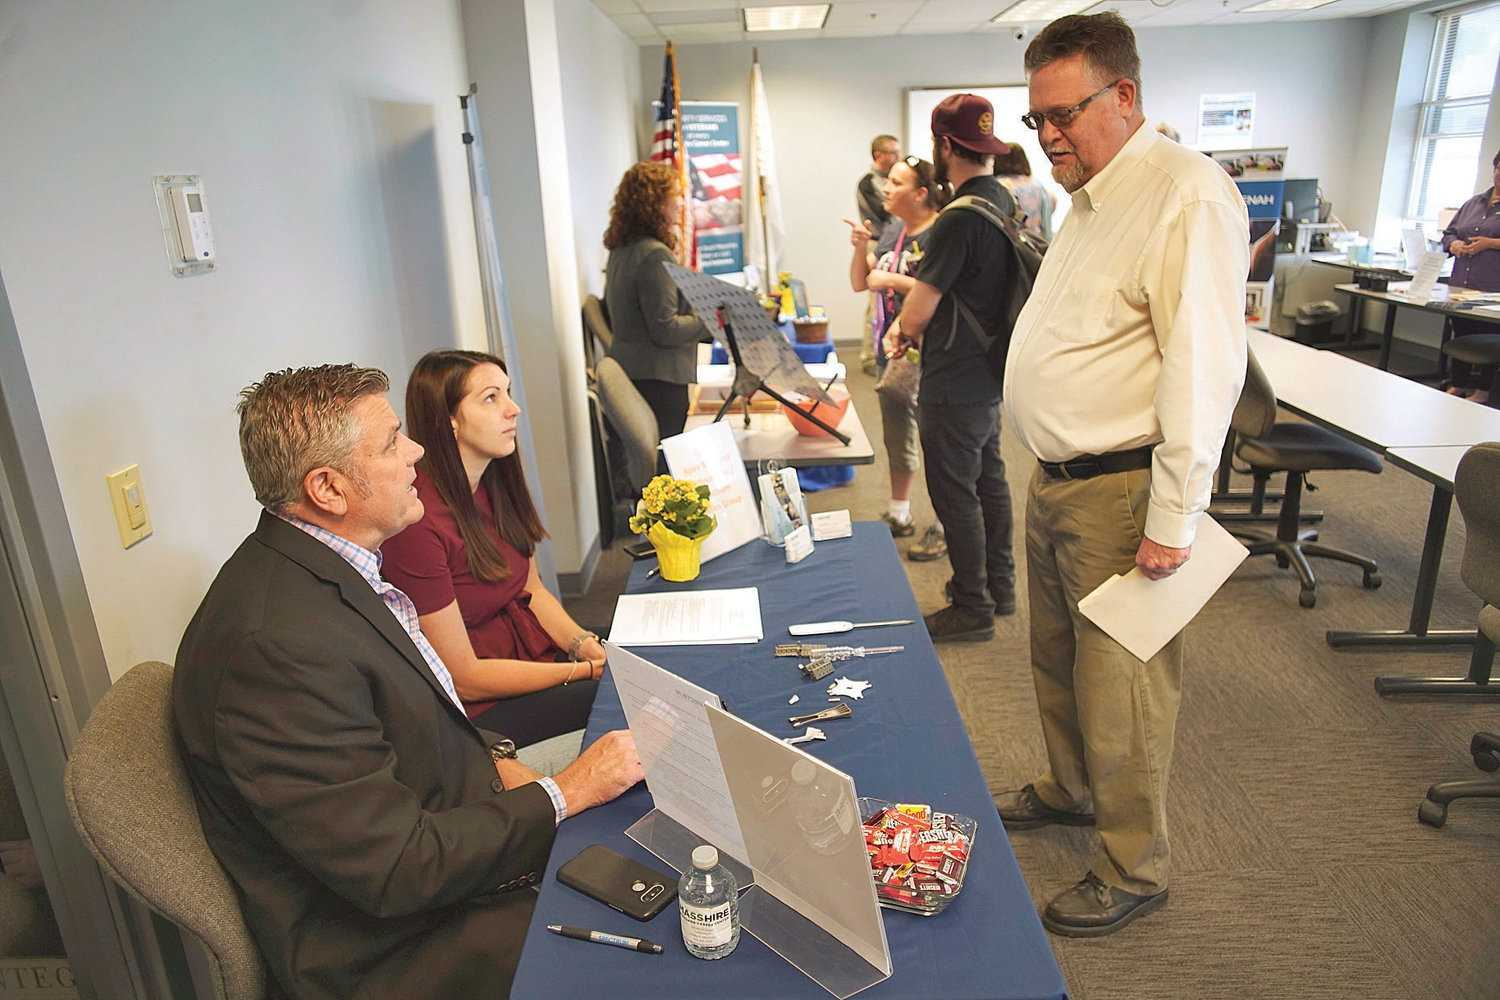 Advanced manufacturing job fair a nuts-and-bolts effort to boost workforce